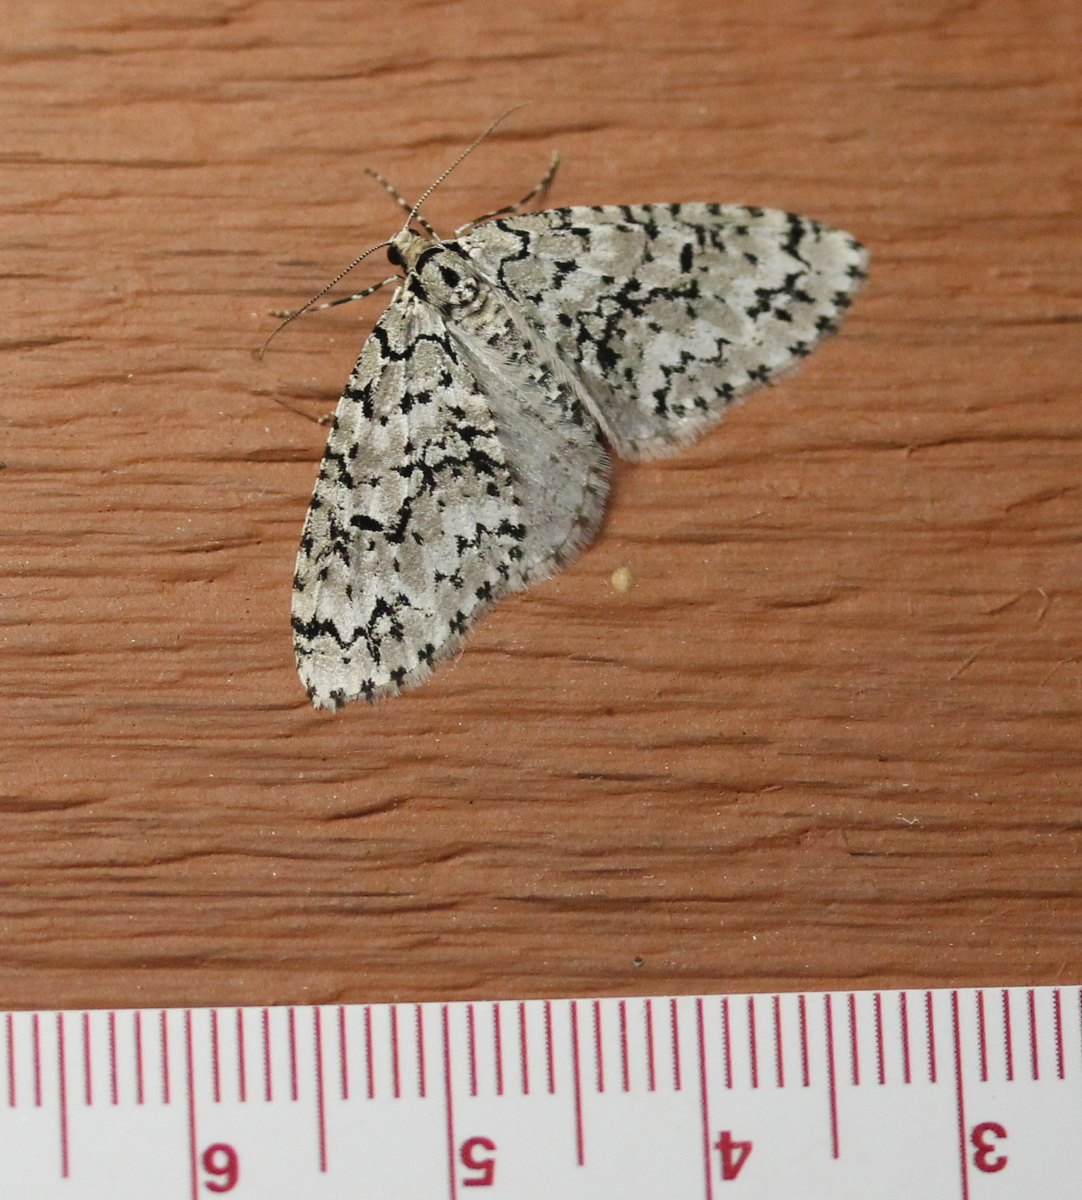 mottled black/white moth with ruler in cm for scale